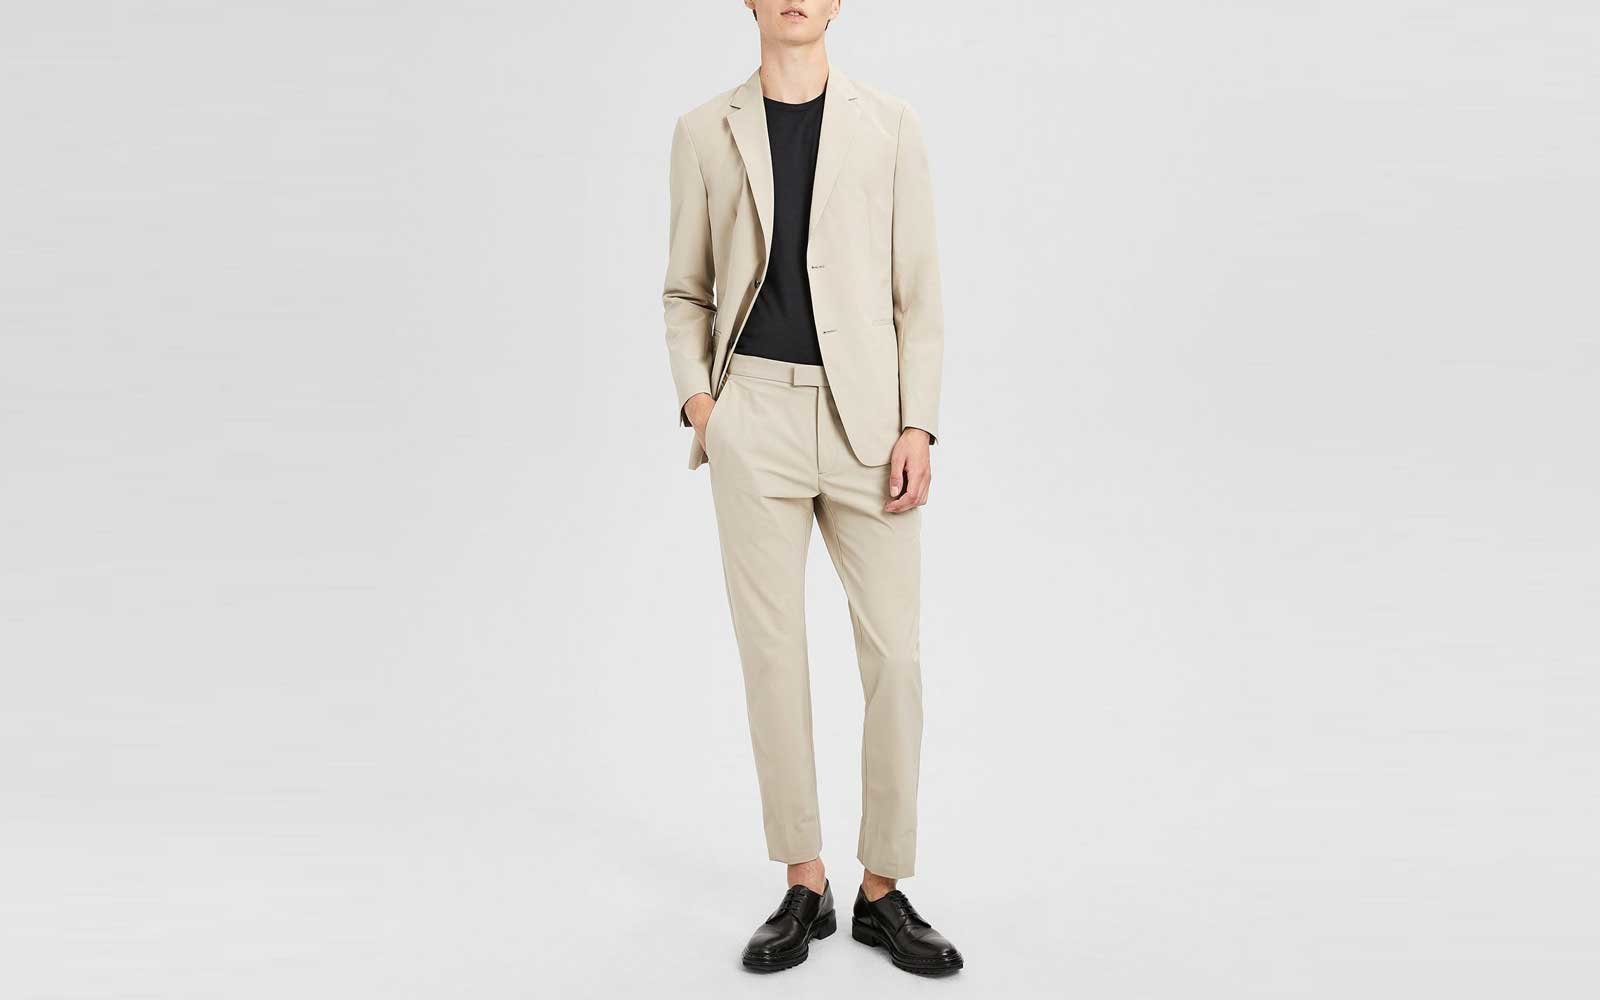 Theory travel suit